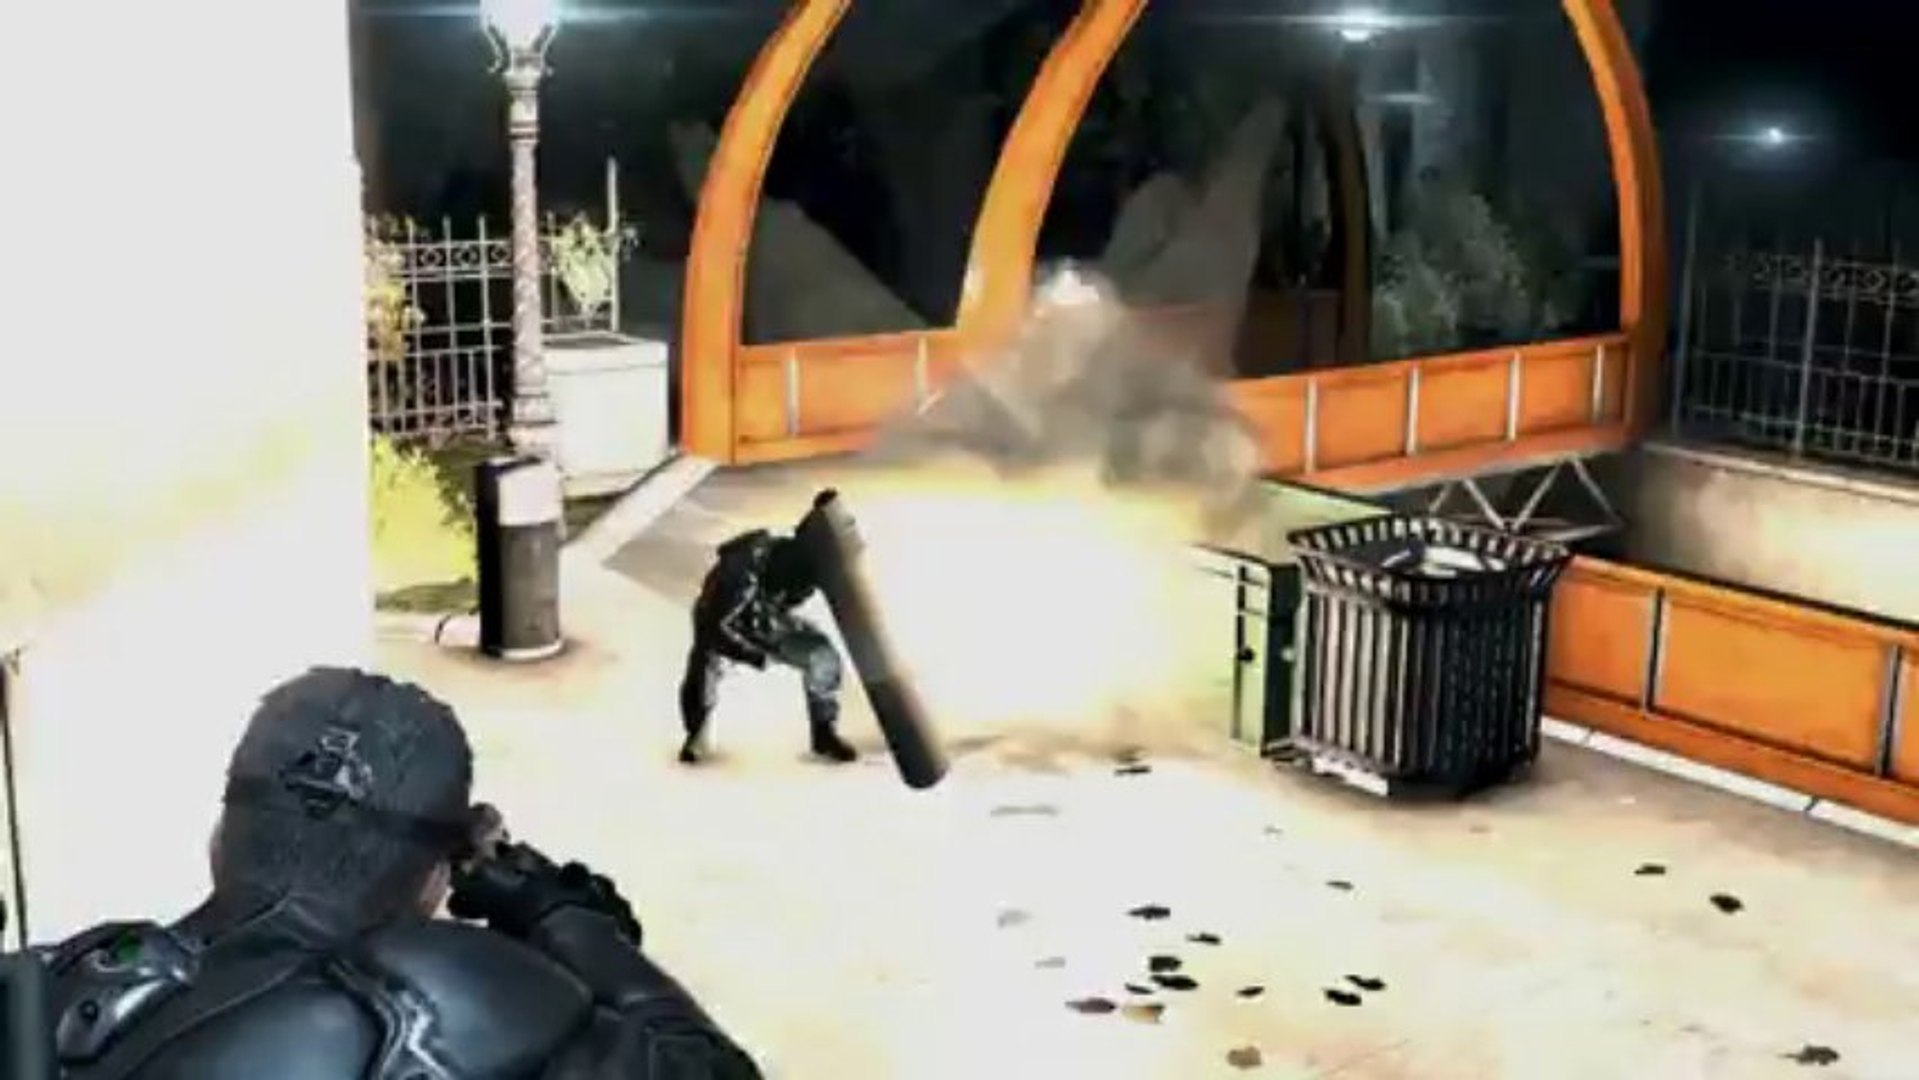 Splinter Cell Blacklist Transformation Trailer